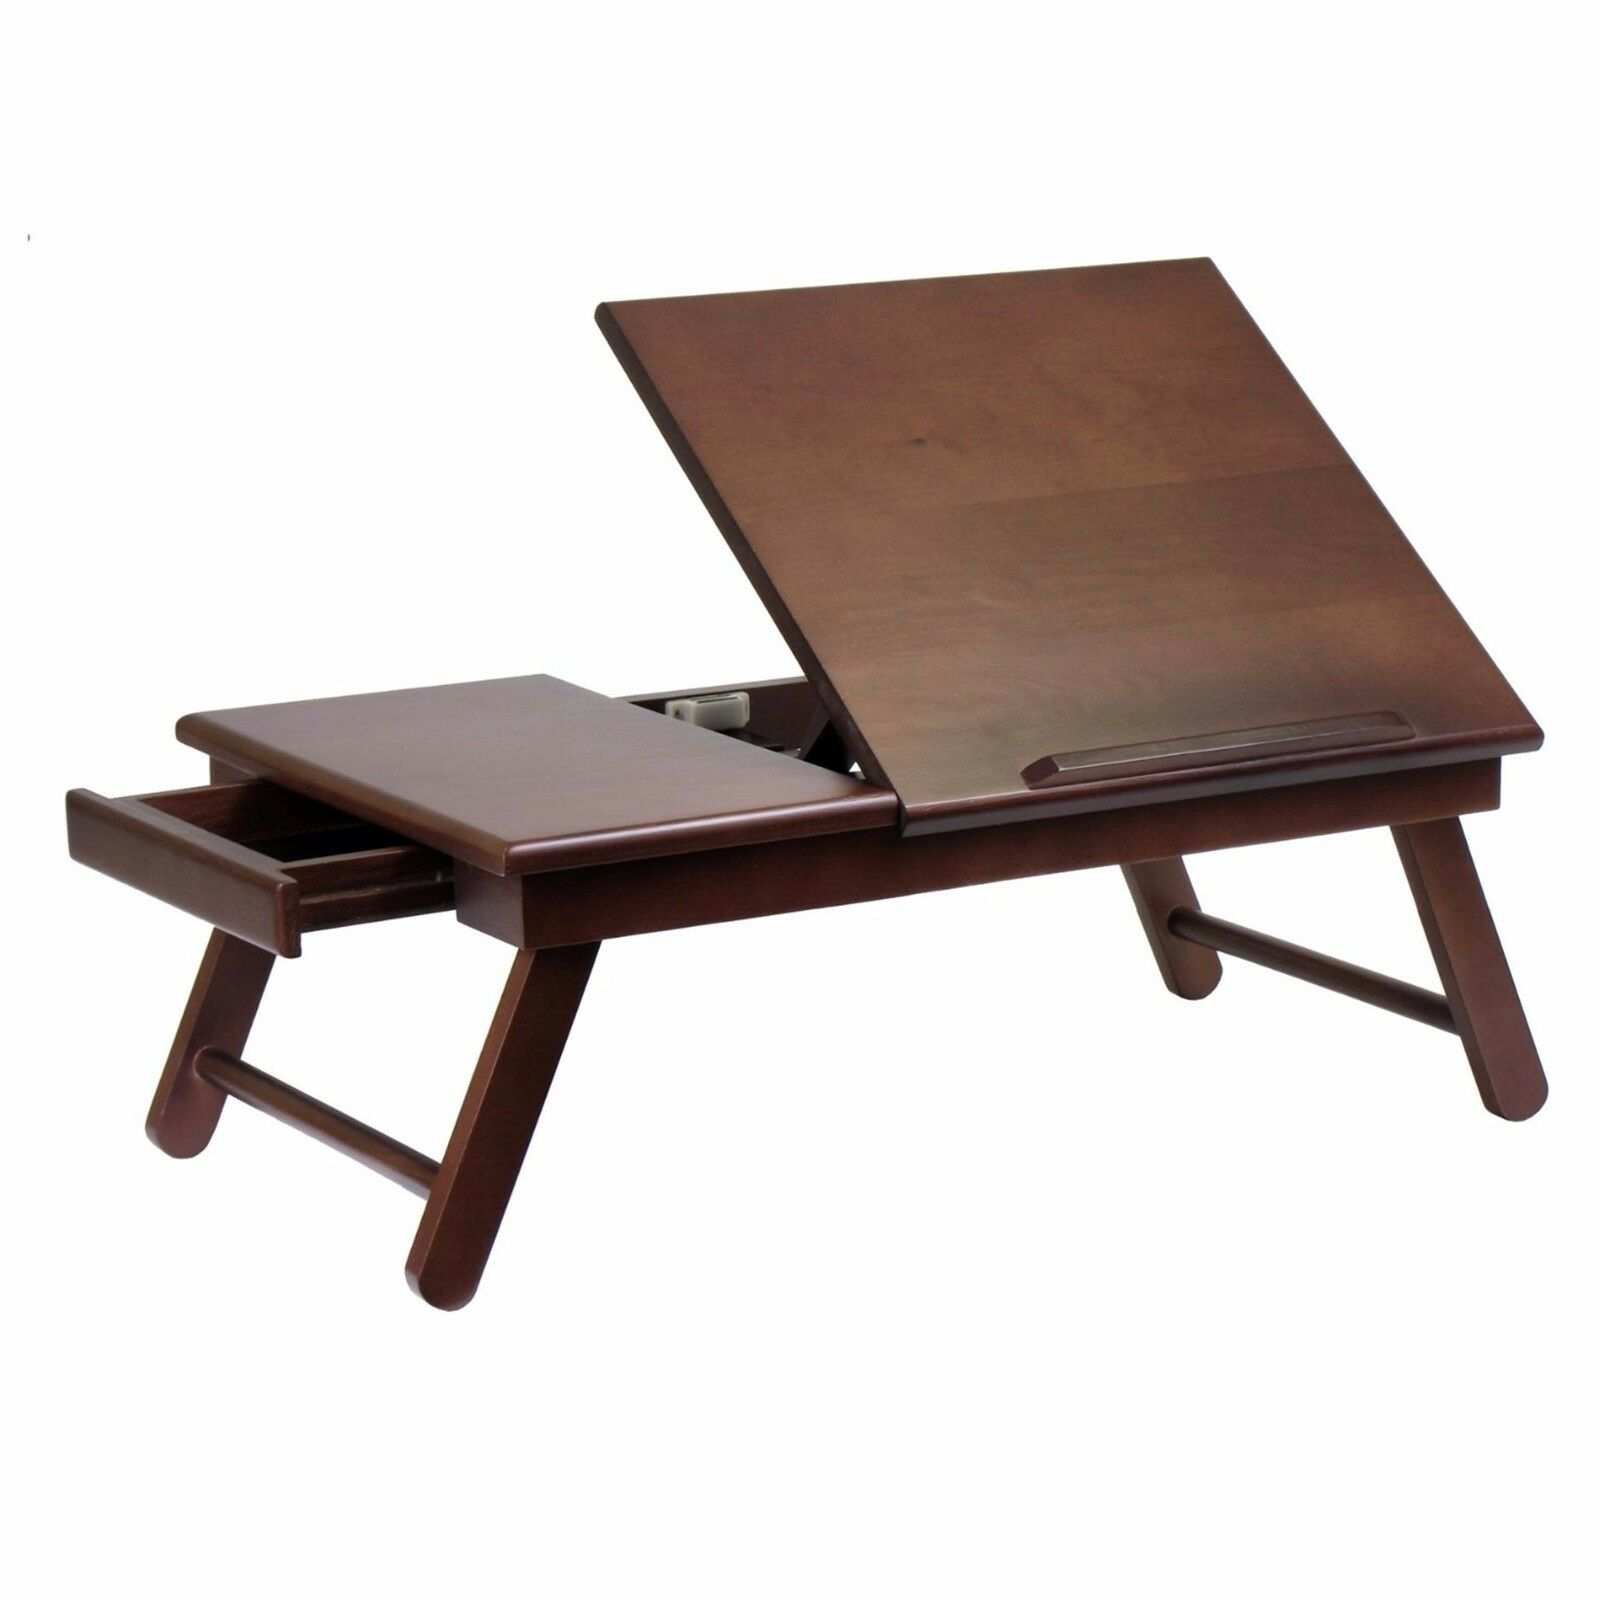 Details About Wood Lap Desk Laptop Notebook Writing Work Station Drawer Table Portable Bed